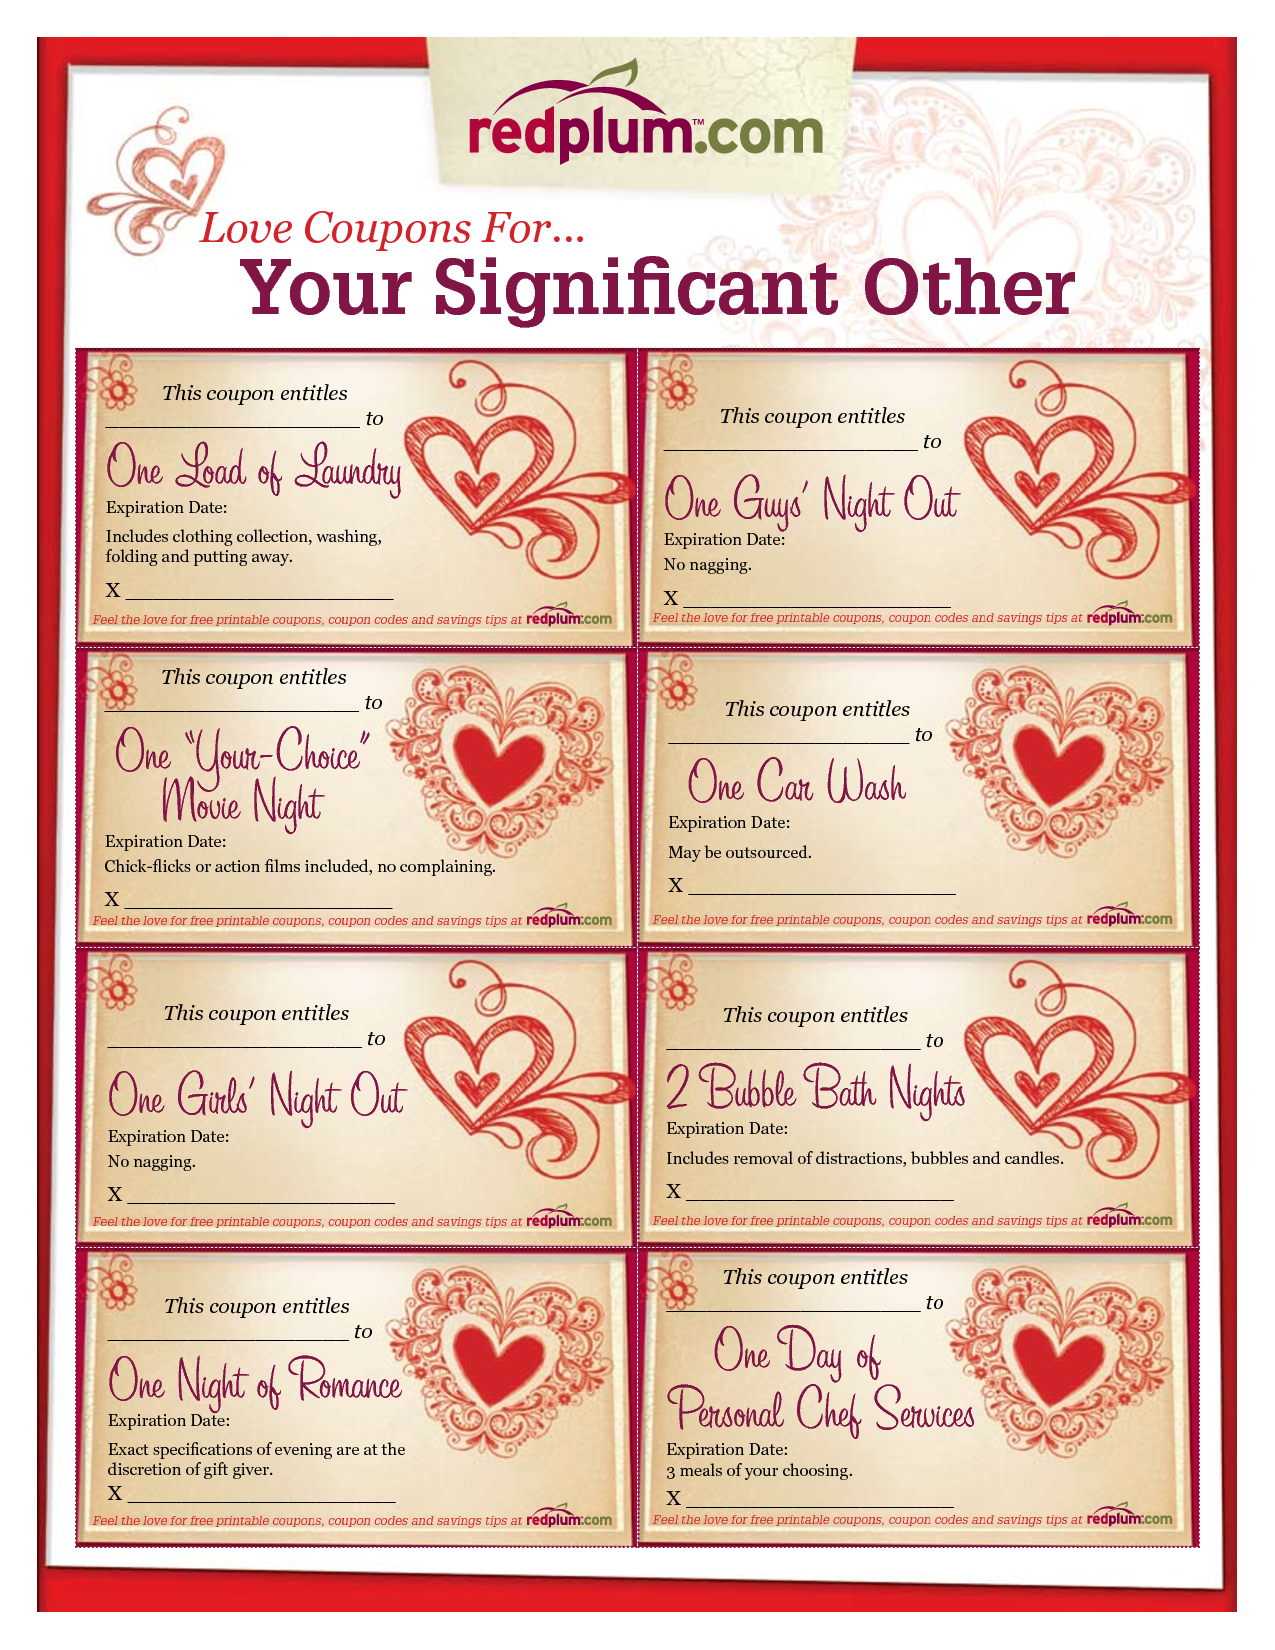 Romantic Love Coupon Template Printable | Love Coupons For Your Significant  Other   RedPlum.com  Blank Coupons Templates